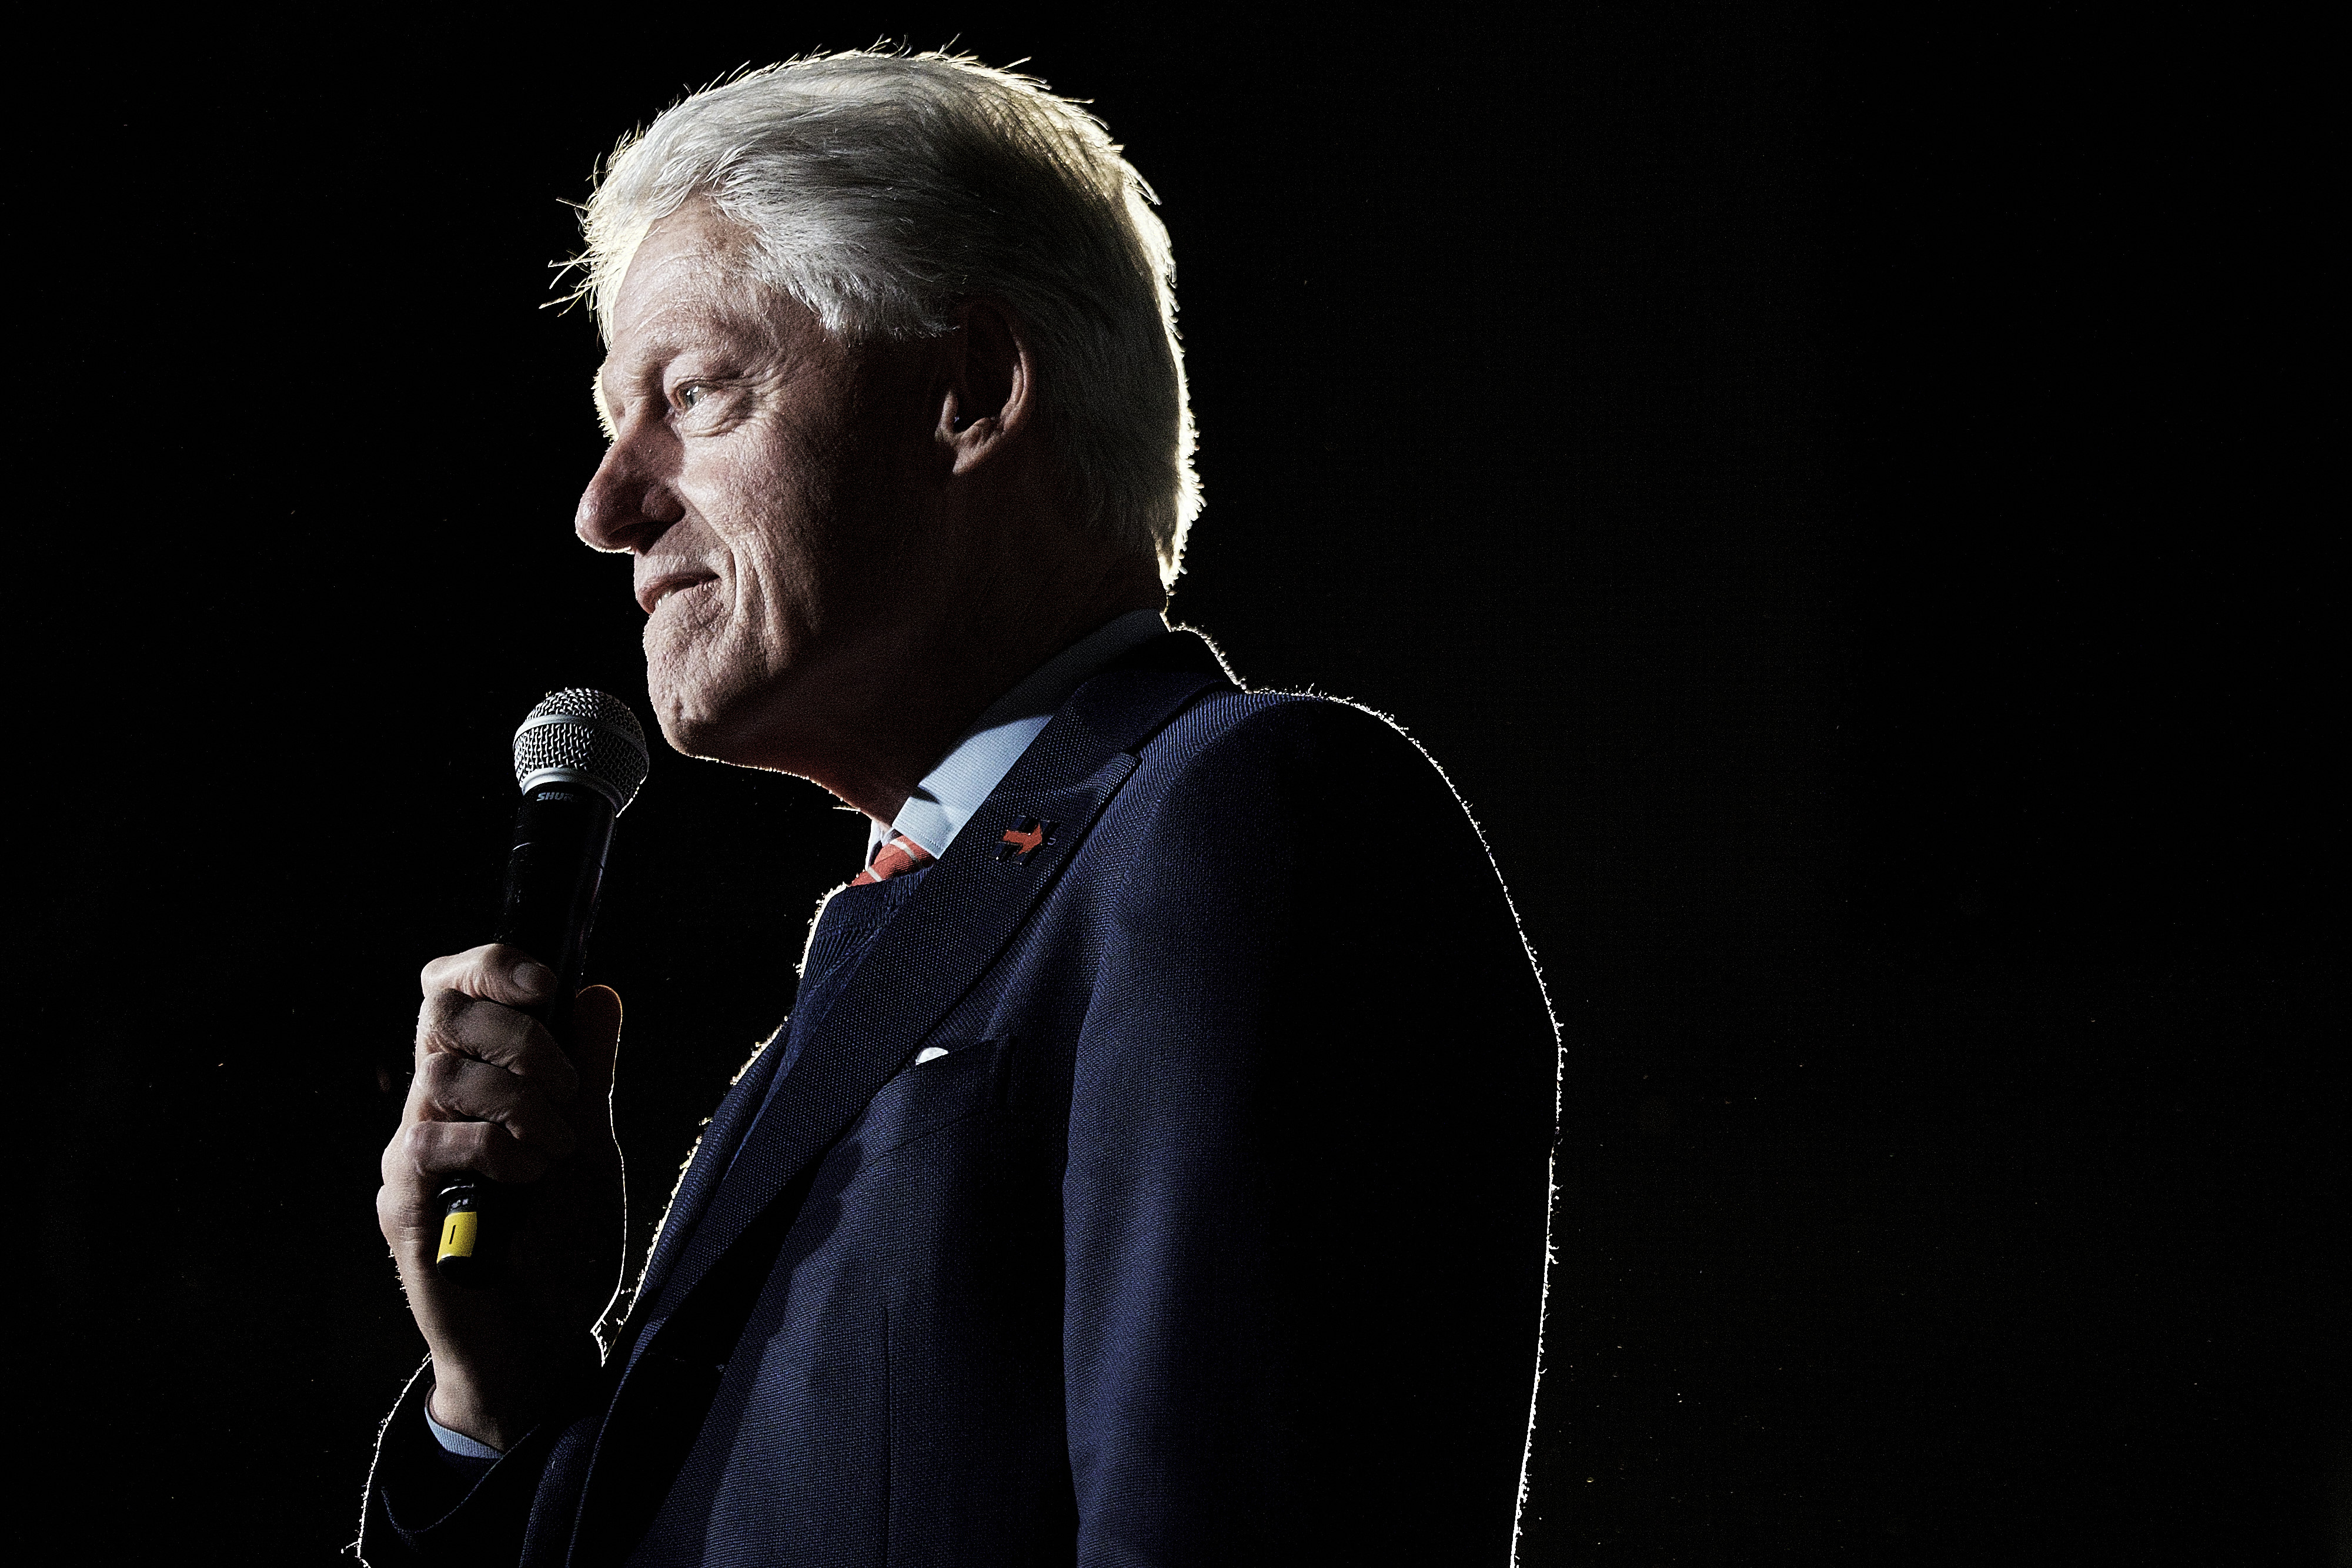 Bill Clinton, former U.S. President and husband of former U.S. Secretary of State and 2016 Democratic presidential candidate Hillary Clinton, speaks to the crowd, during a town hall event at the Columbia Museum of Art Boyd Plaza in Columbia, S.C., on Feb. 26, 2017.